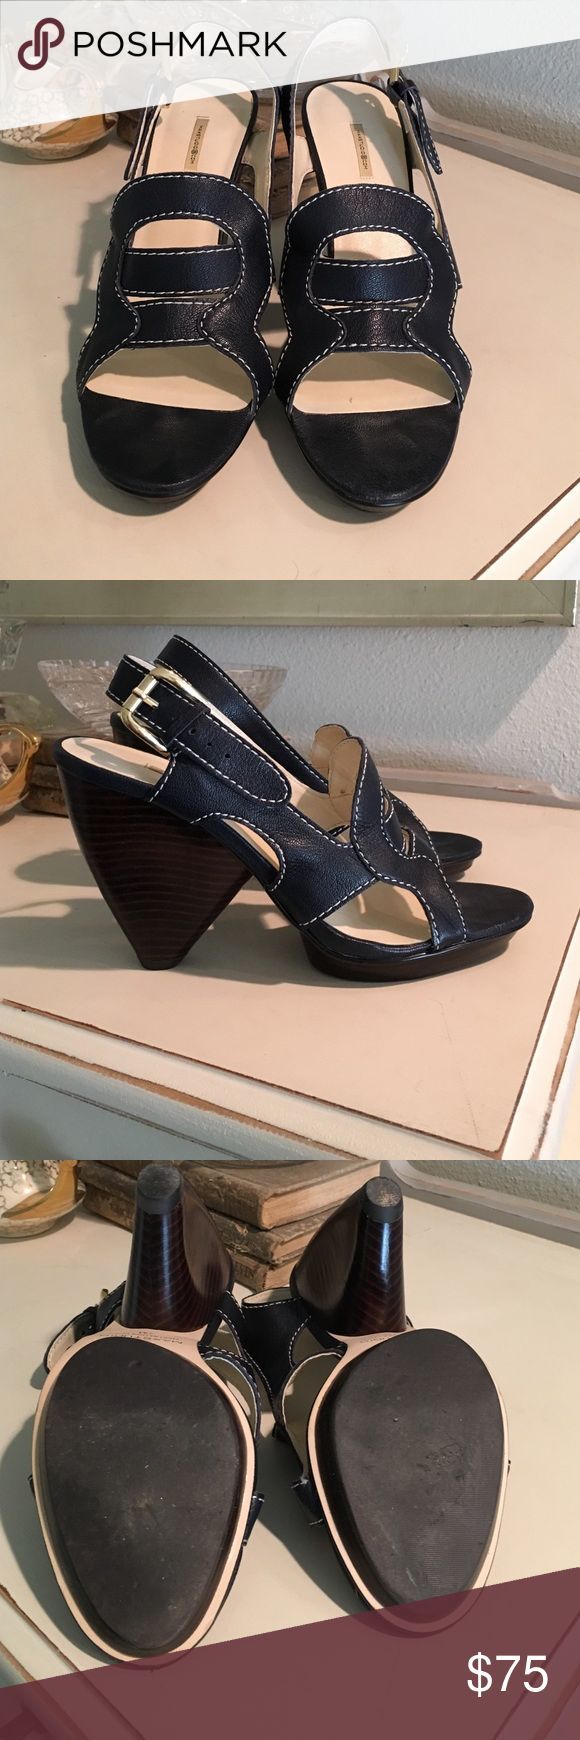 Max studio navy blue and white wedges Beautiful and totally unique navy blue with white stitching max studio wedges. Rarely worn.  Comes with original box. Max Studio Shoes Wedges